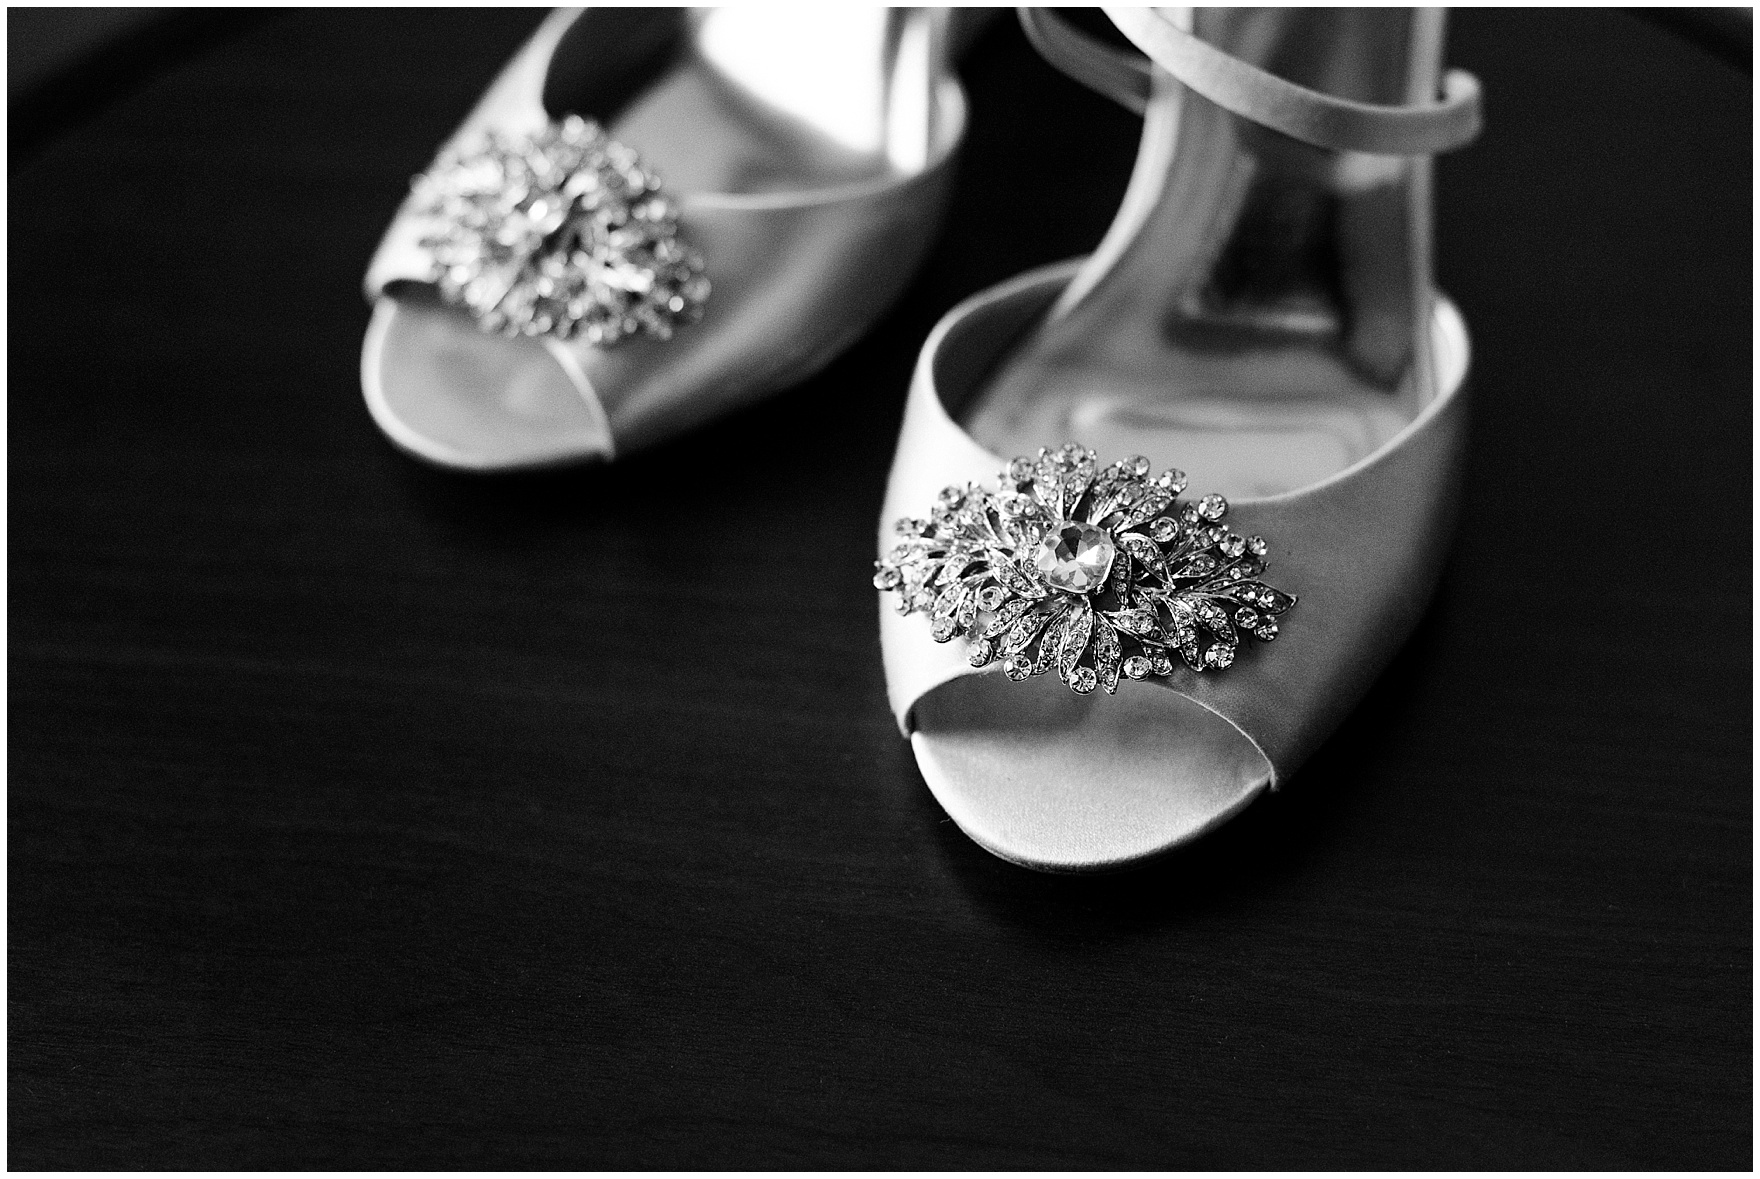 Detail of the bride's shoes for a University of Notre Dame wedding.